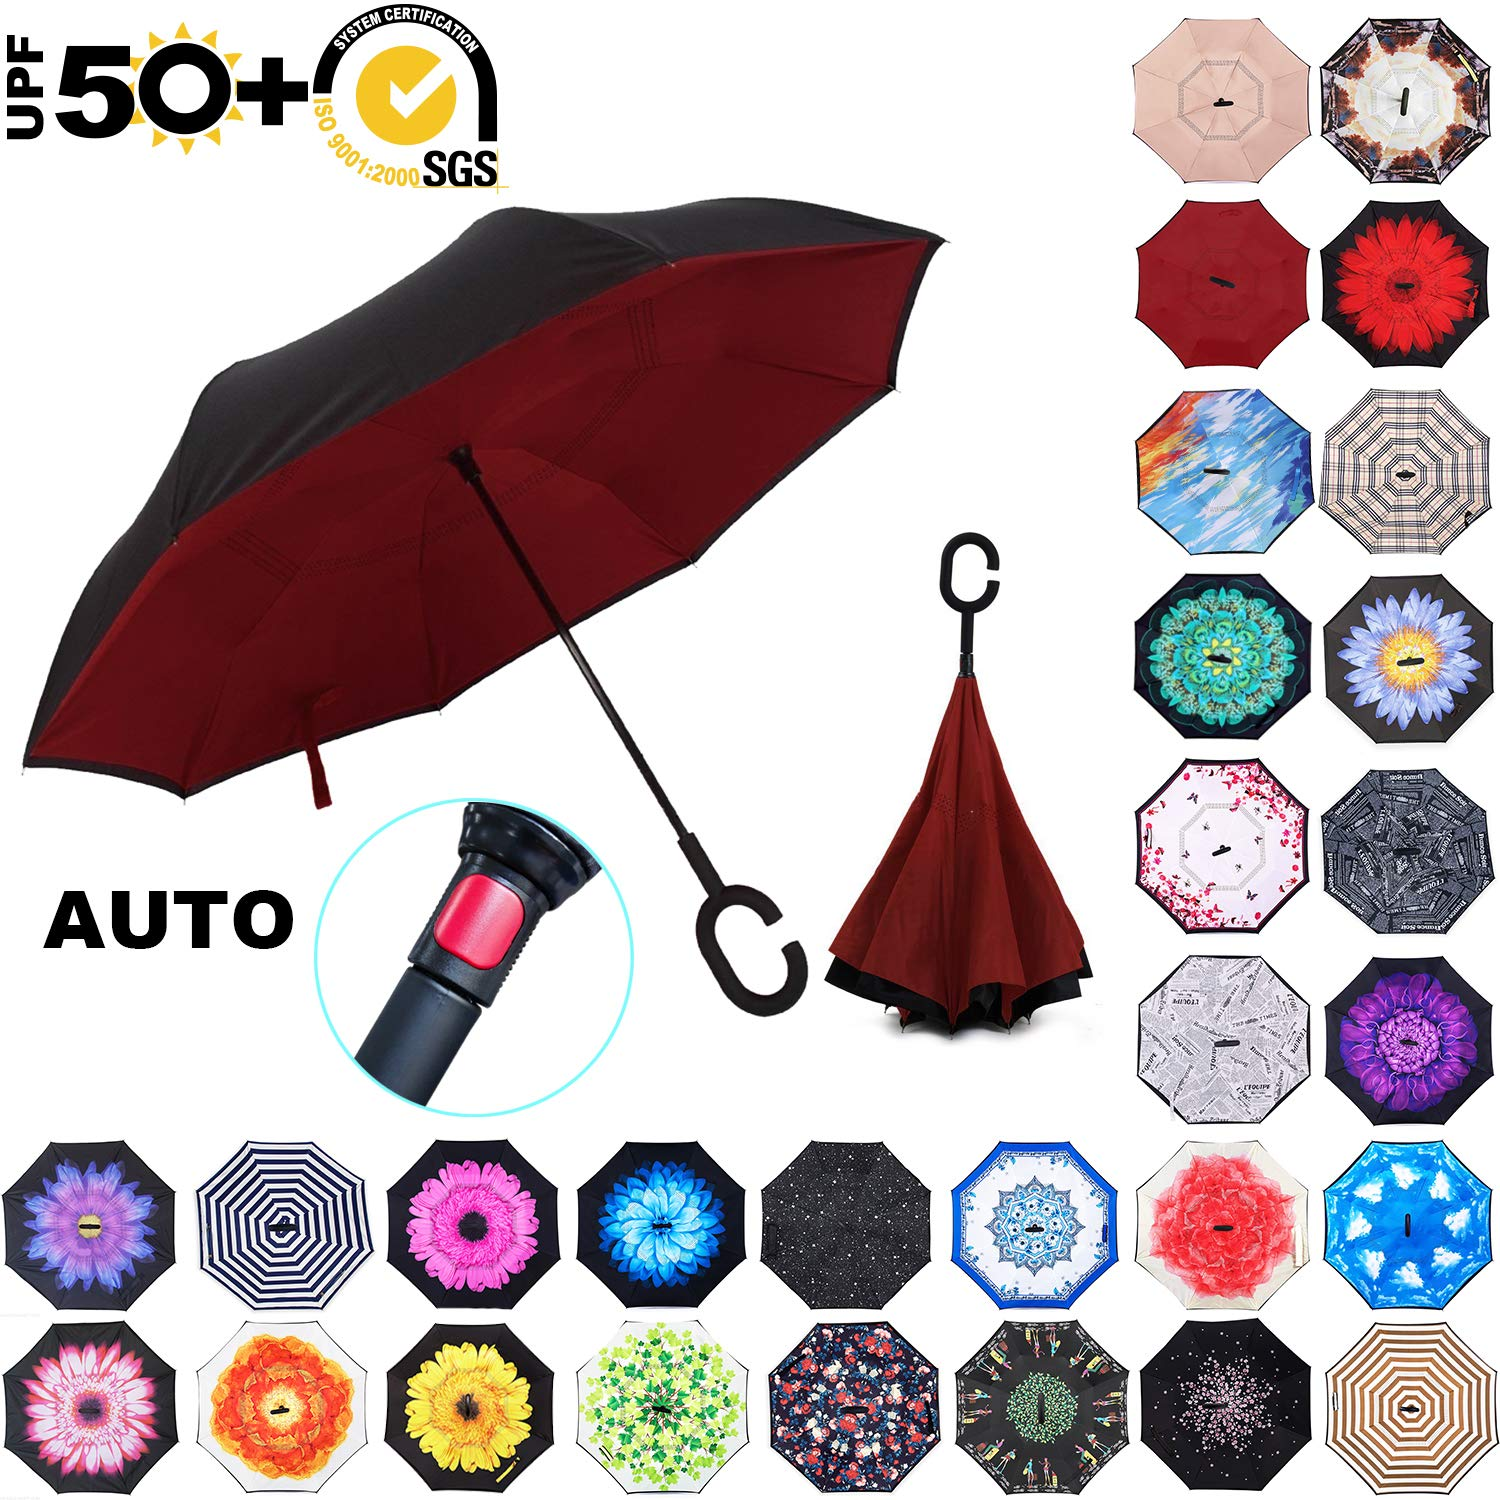 ABCCANOPY Inverted Umbrella,Double Layer Reverse Rain&Wind Teflon Repellent Umbrella for Car and Outdoor Use, Windproof UPF 50+ Big Straight Umbrella with C-Shaped Handle, Burgundy